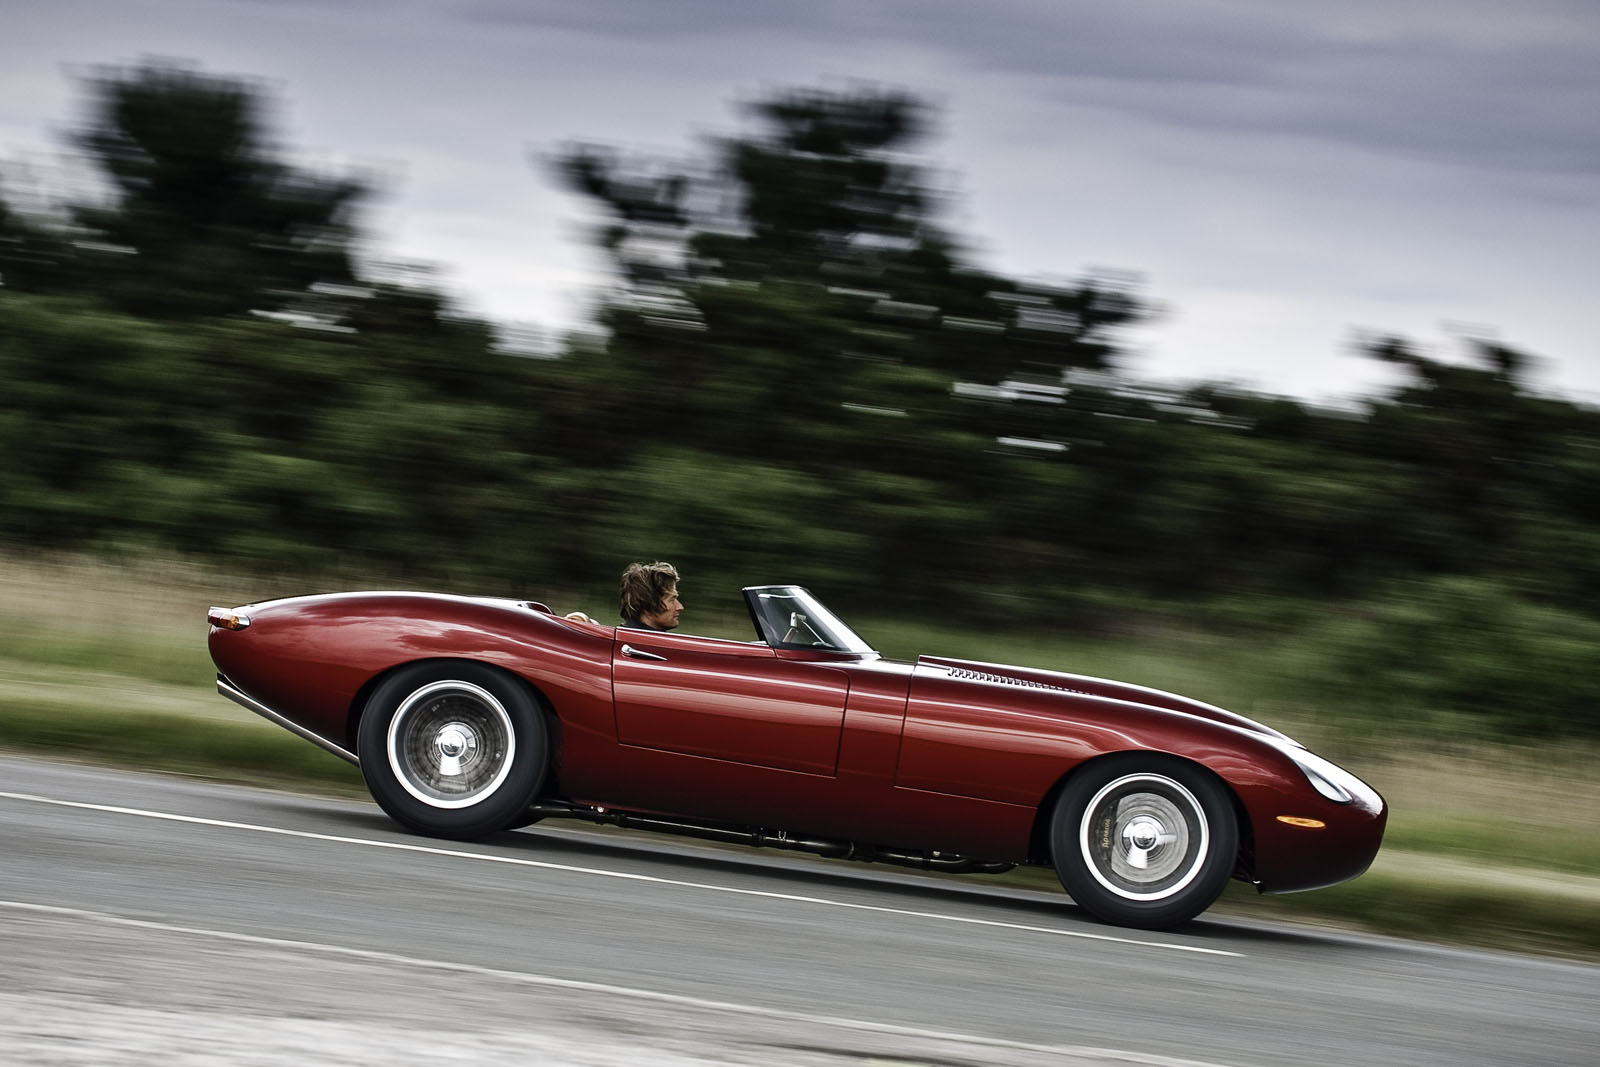 Eagle speedster photo - 2